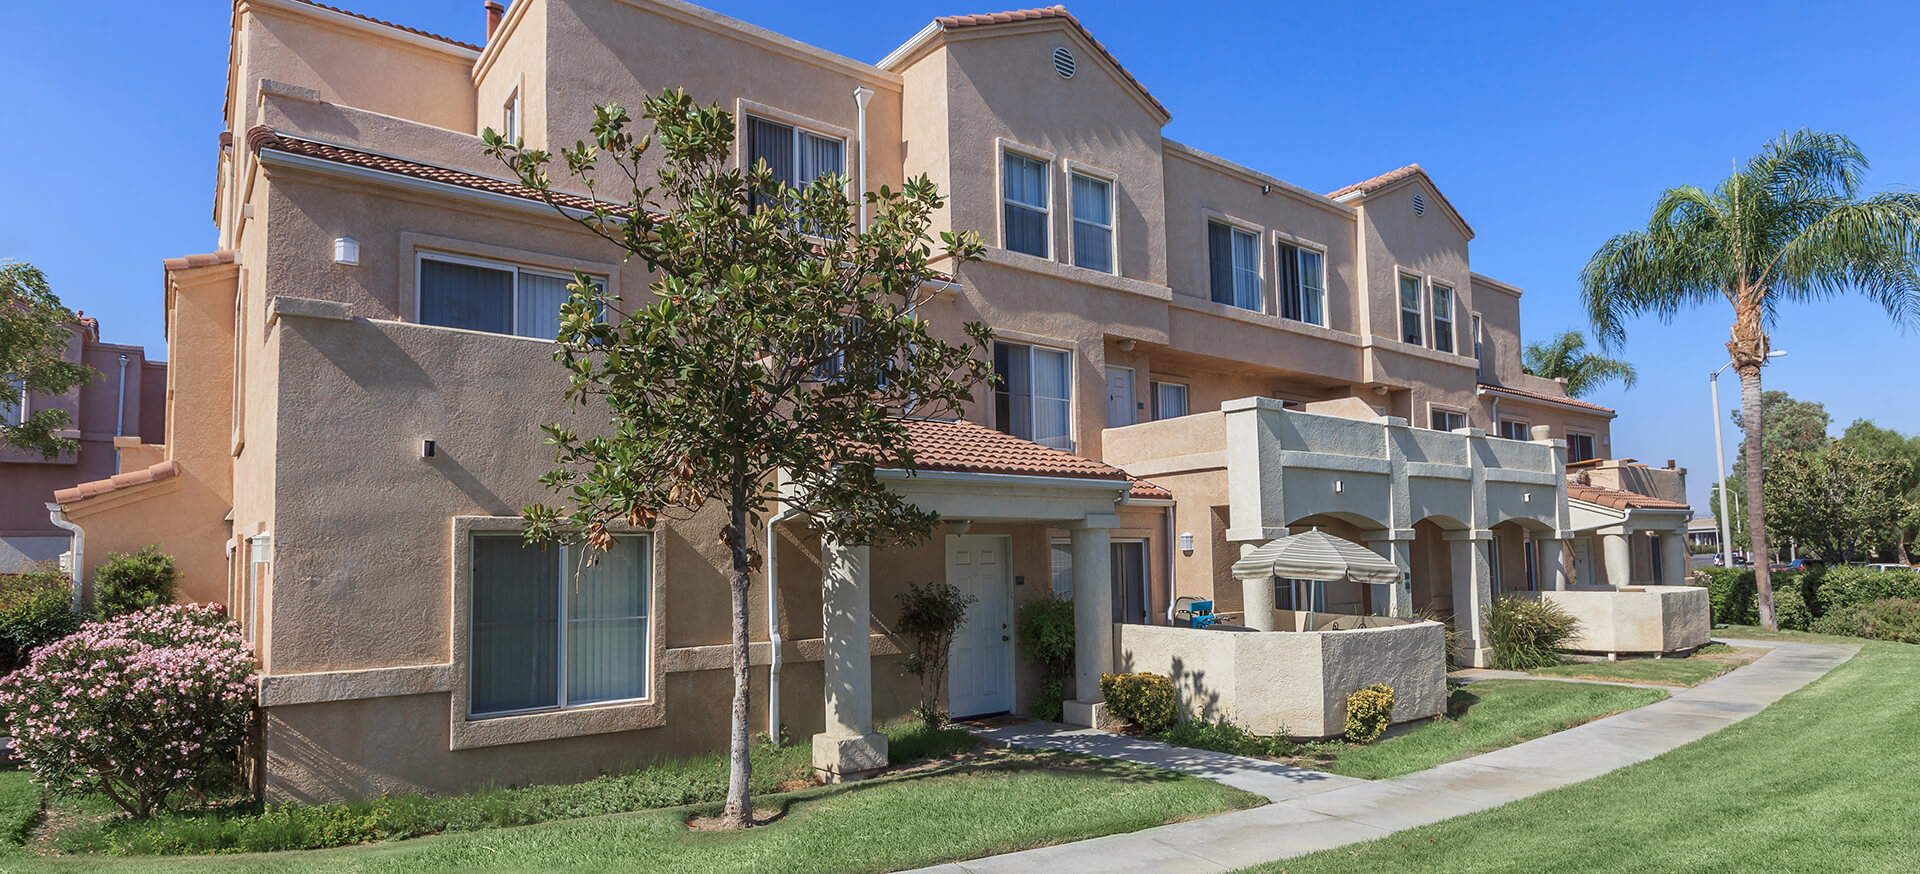 Santa Clarita, California Apartments At River Ranch Townhomes